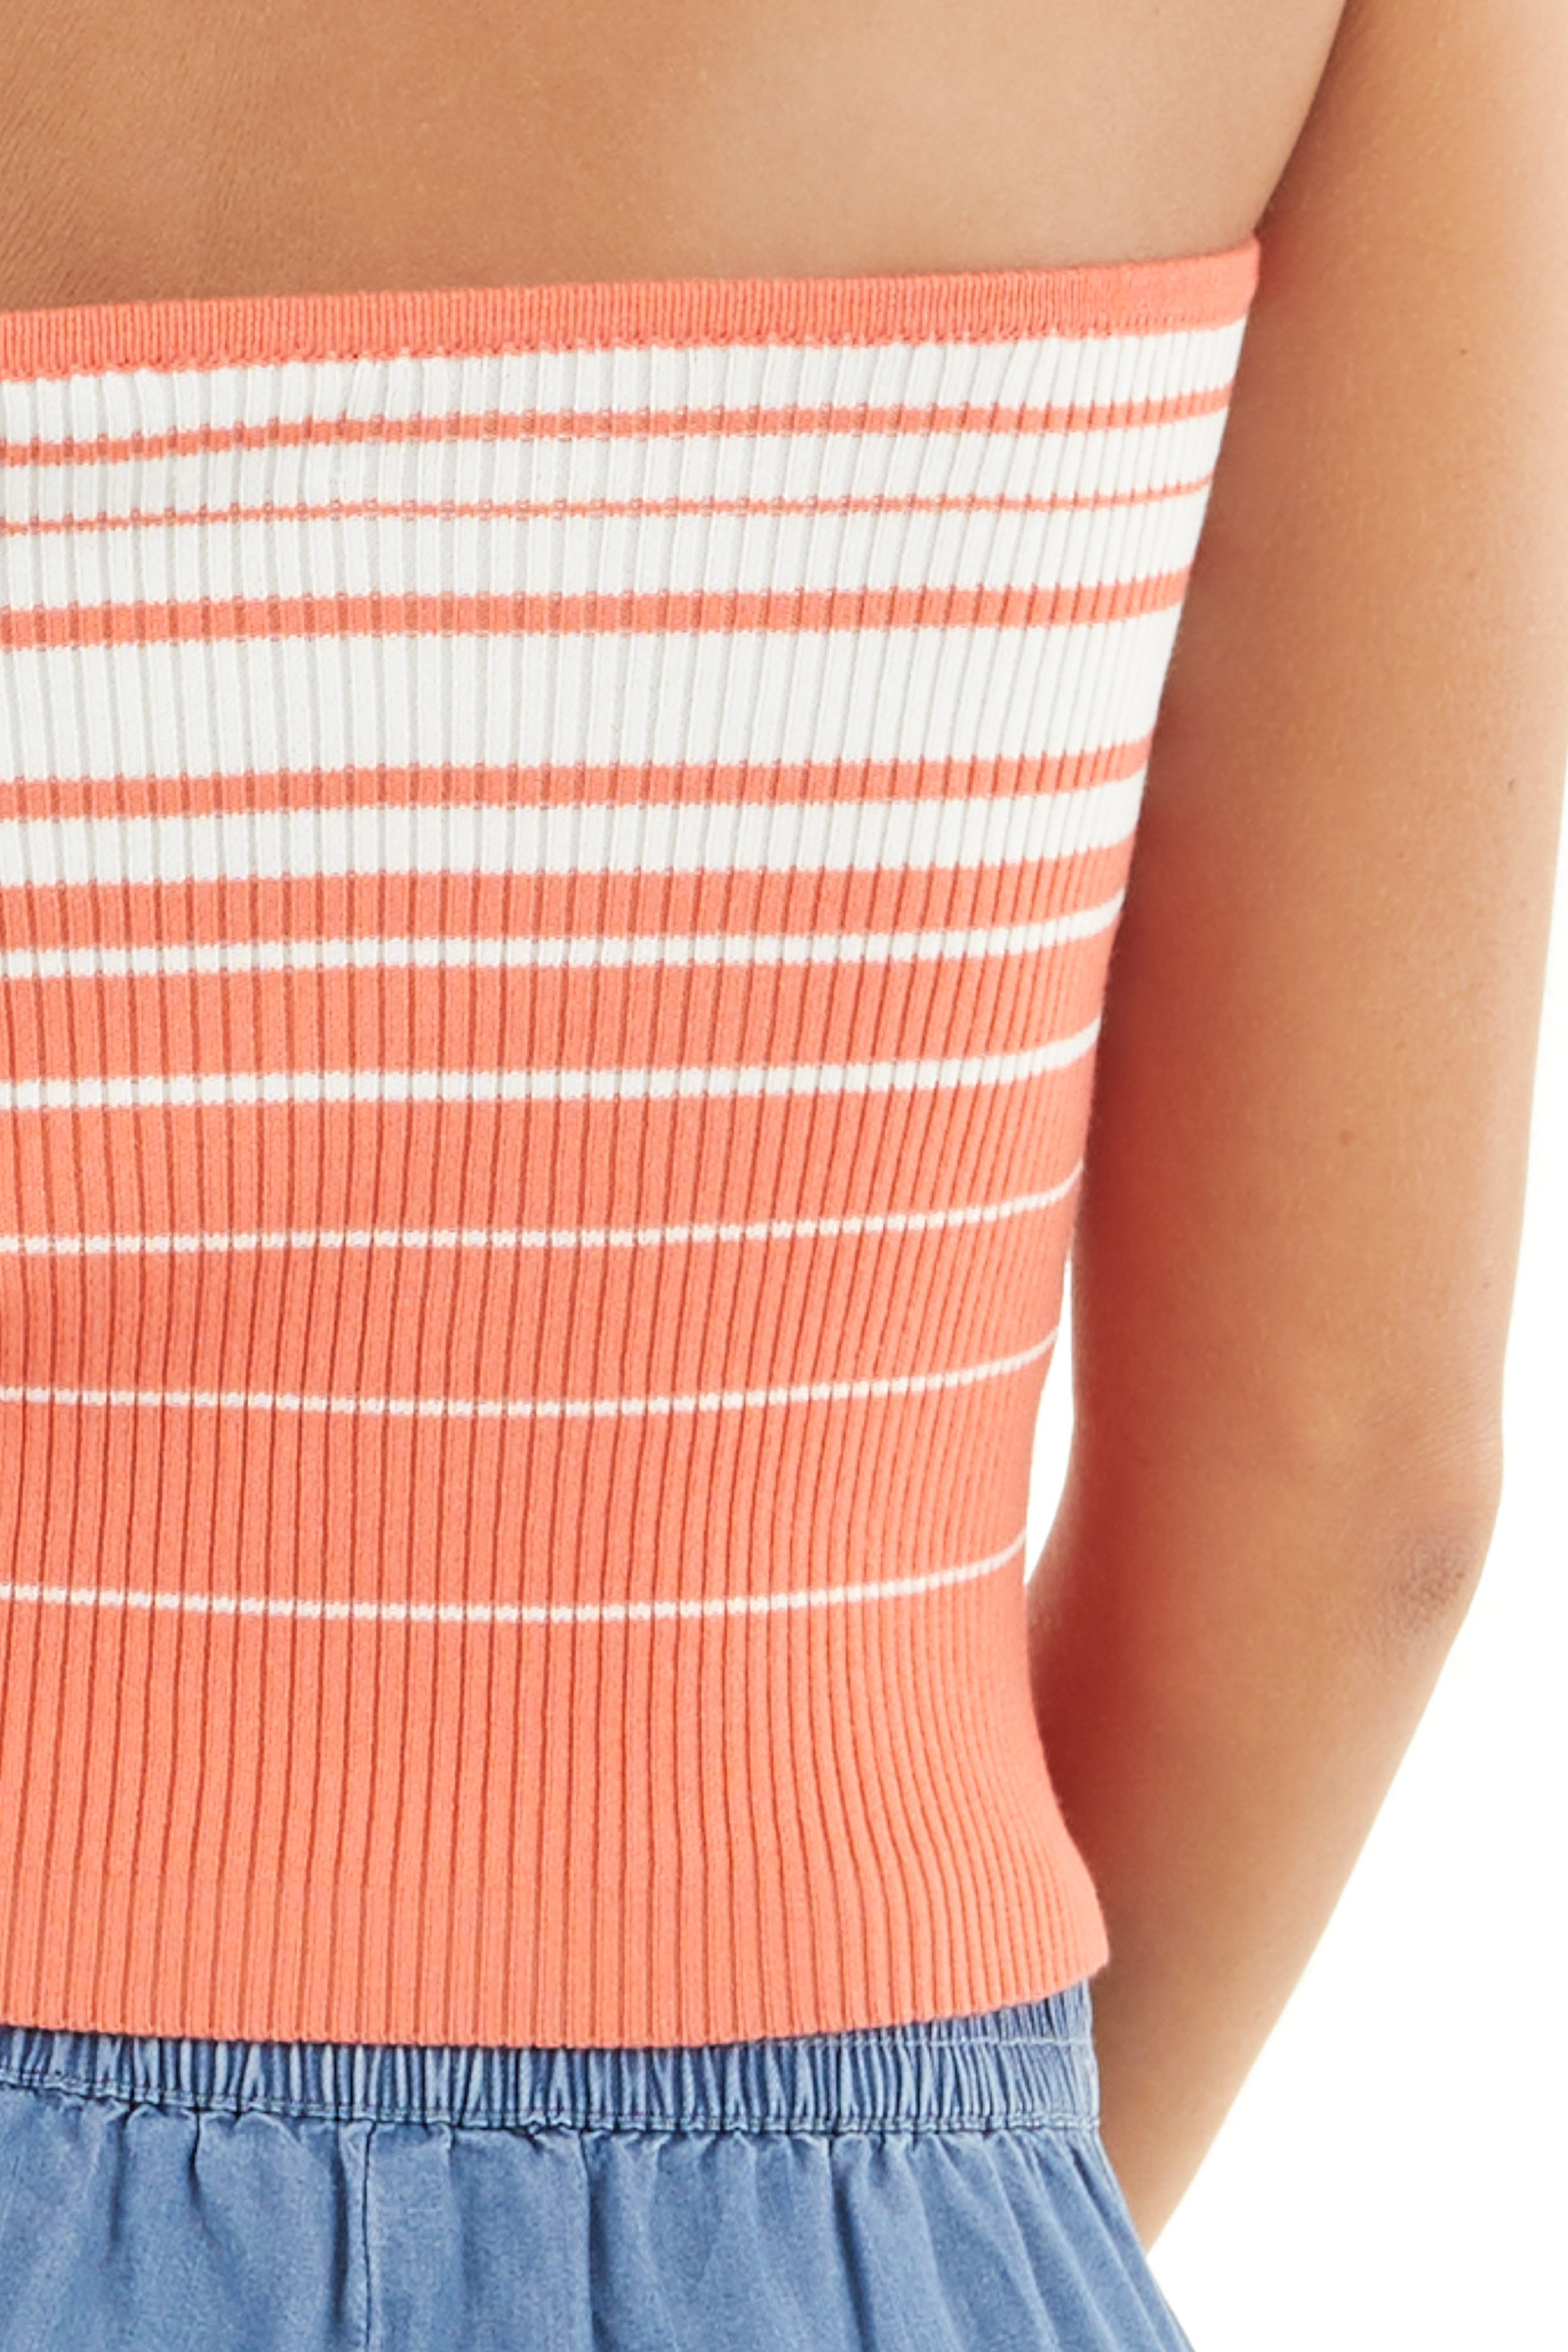 Coral and Coconut White Striped Ribbed Knit Tube Top detail